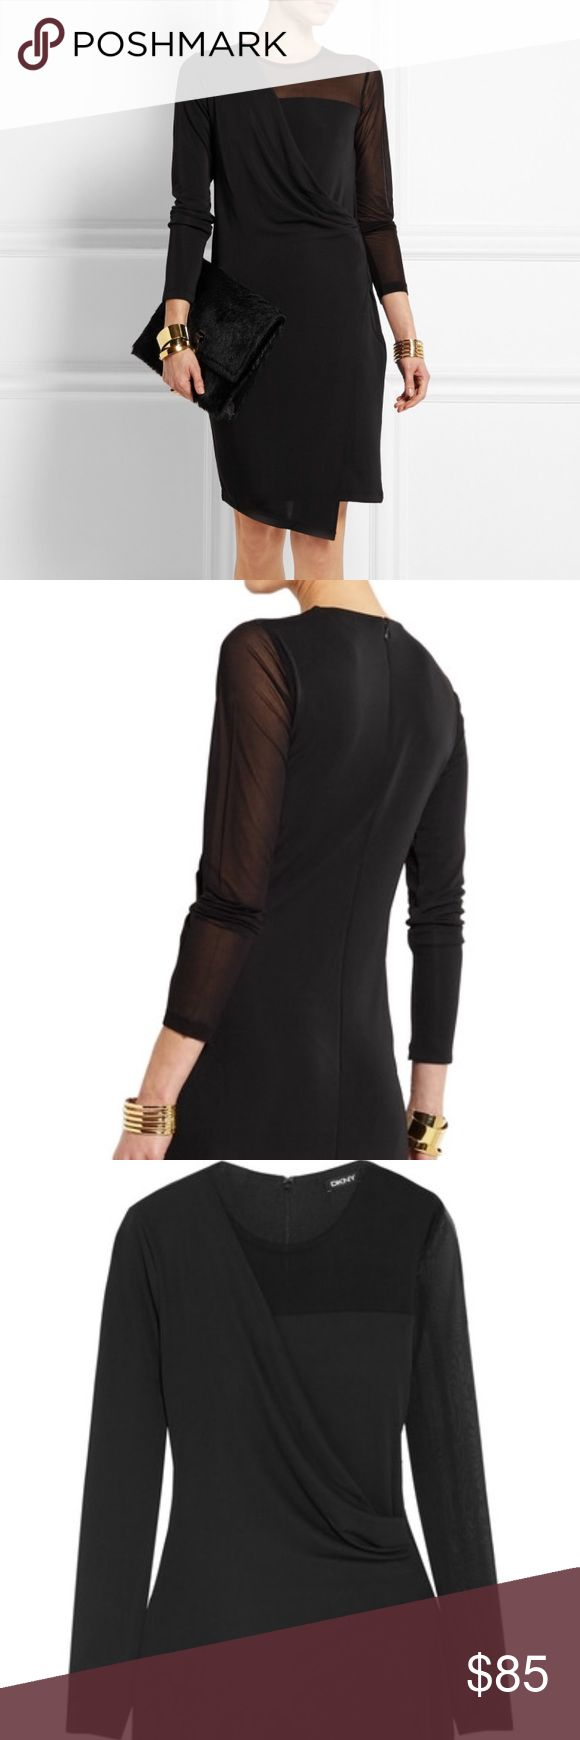 NWT DKNY Mesh-Paneled Dress Brand new! Made from a slinky satin-Jersey that's paneled with mesh along the sleeve. Flattering wrap effect skirt, fluid draped overlay that hugs in all the right places. Mid-weight, stretchy fabric. Fits true to size. Dkny Dresses Midi